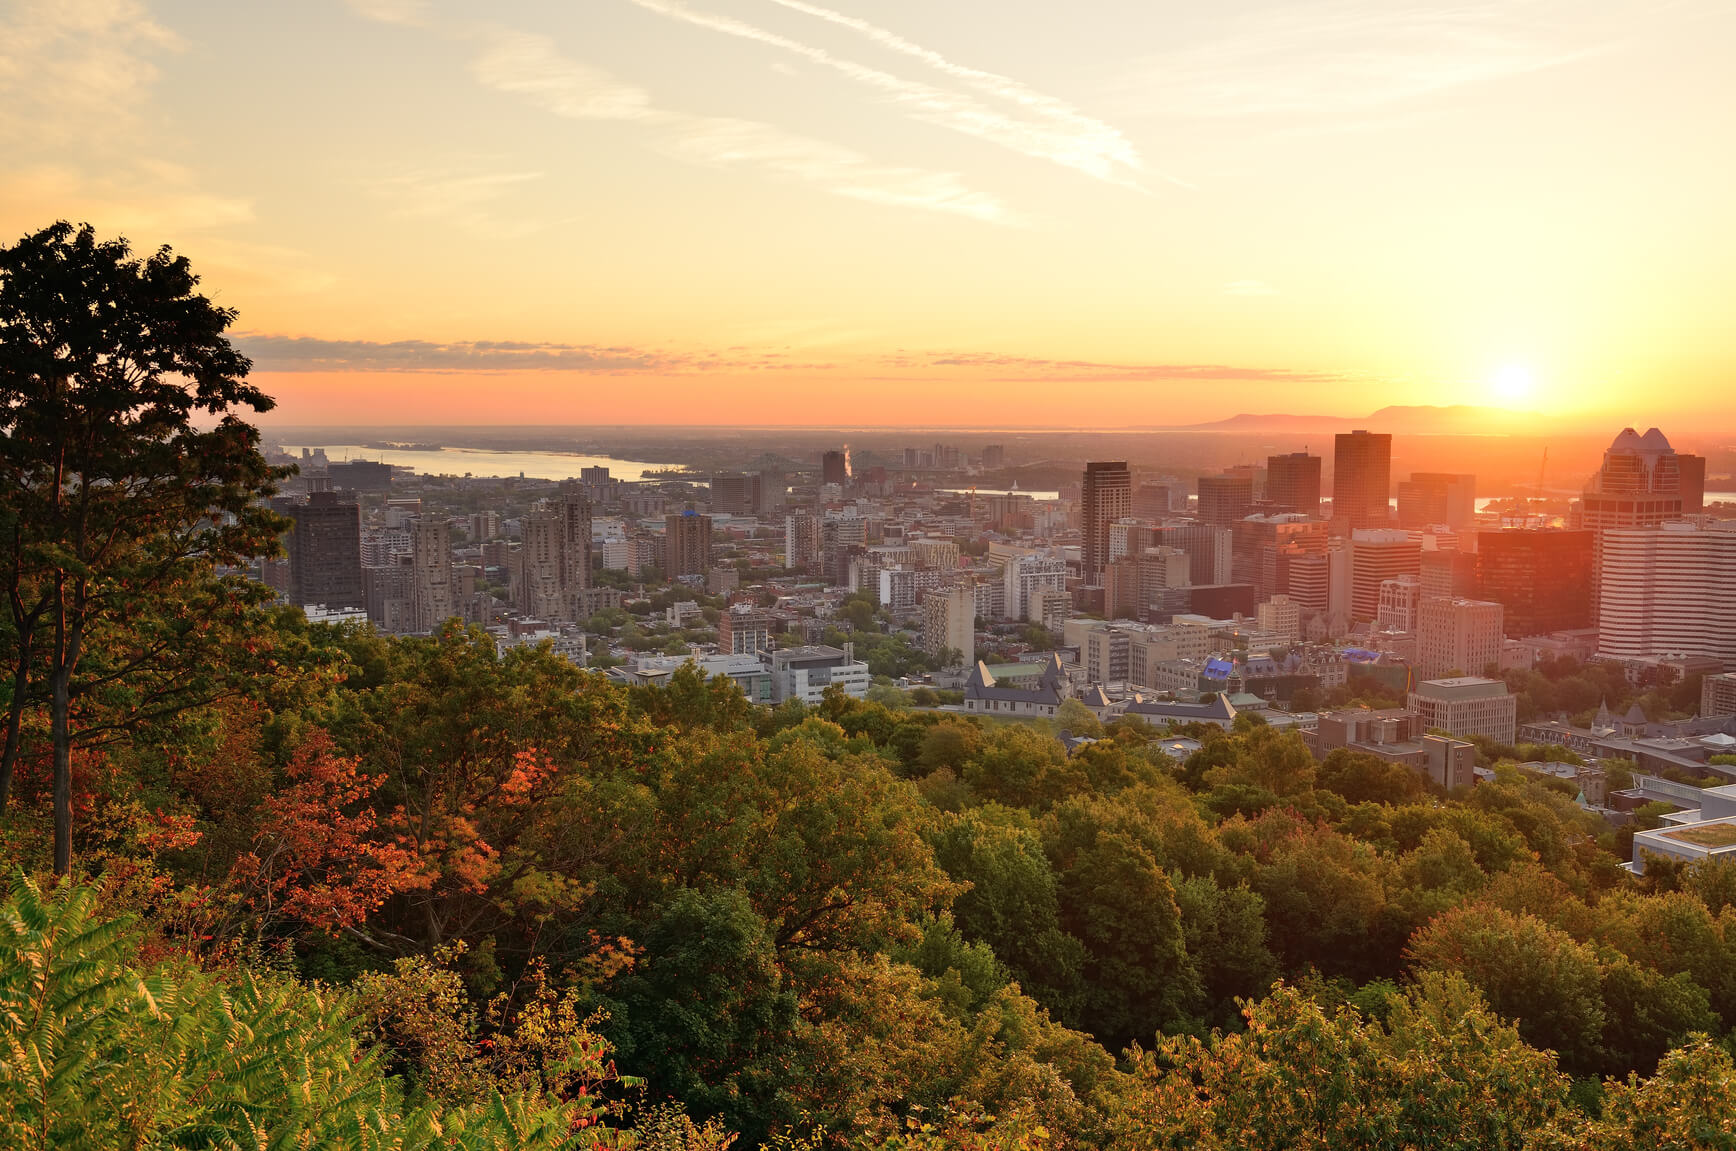 Non-stop from Paris, France to Montreal, Canada for only €281 roundtrip